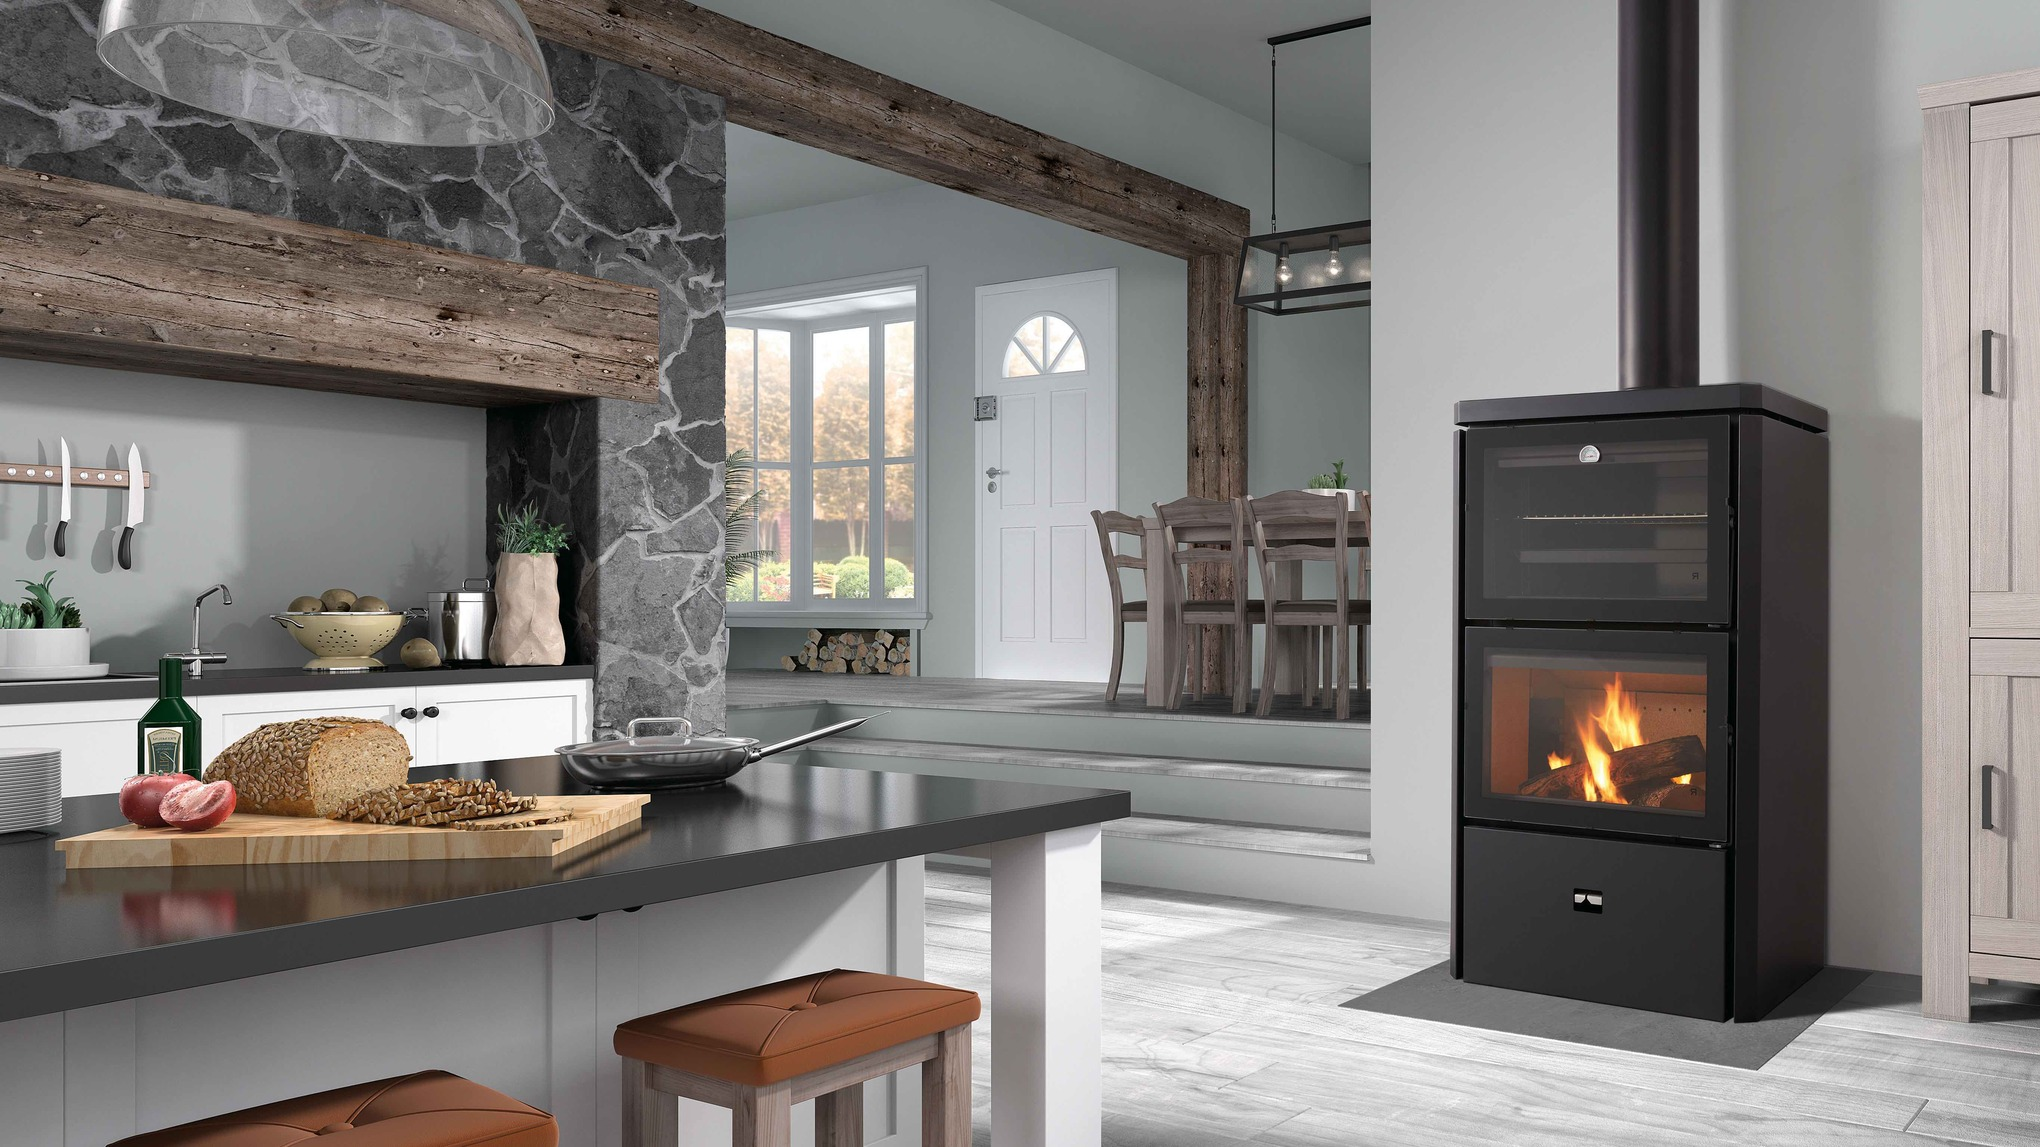 Hebar Wood Burning Stove with Oven and Barbecue